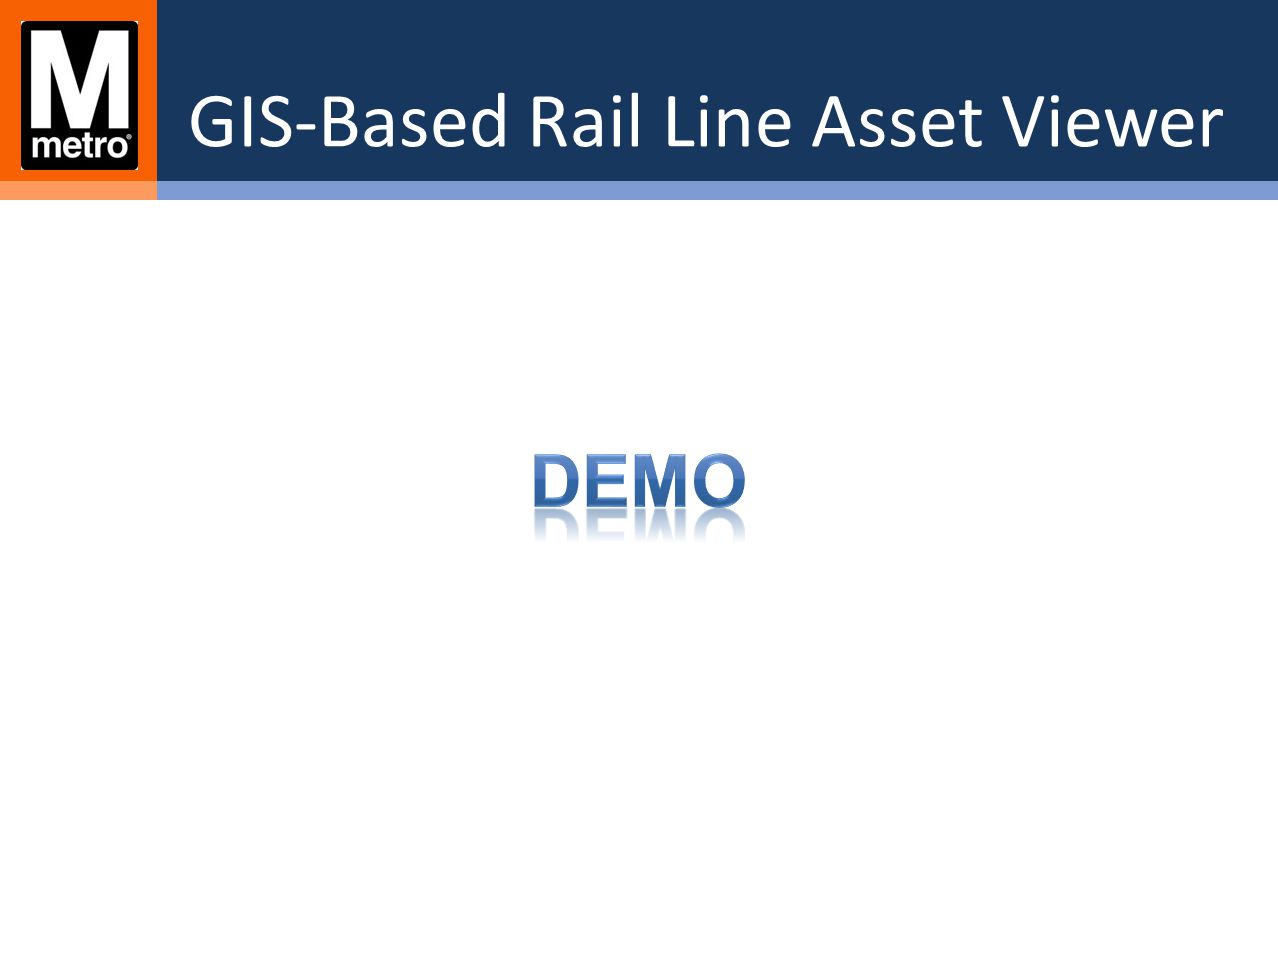 GIS-Based Rail Line Asset Viewer